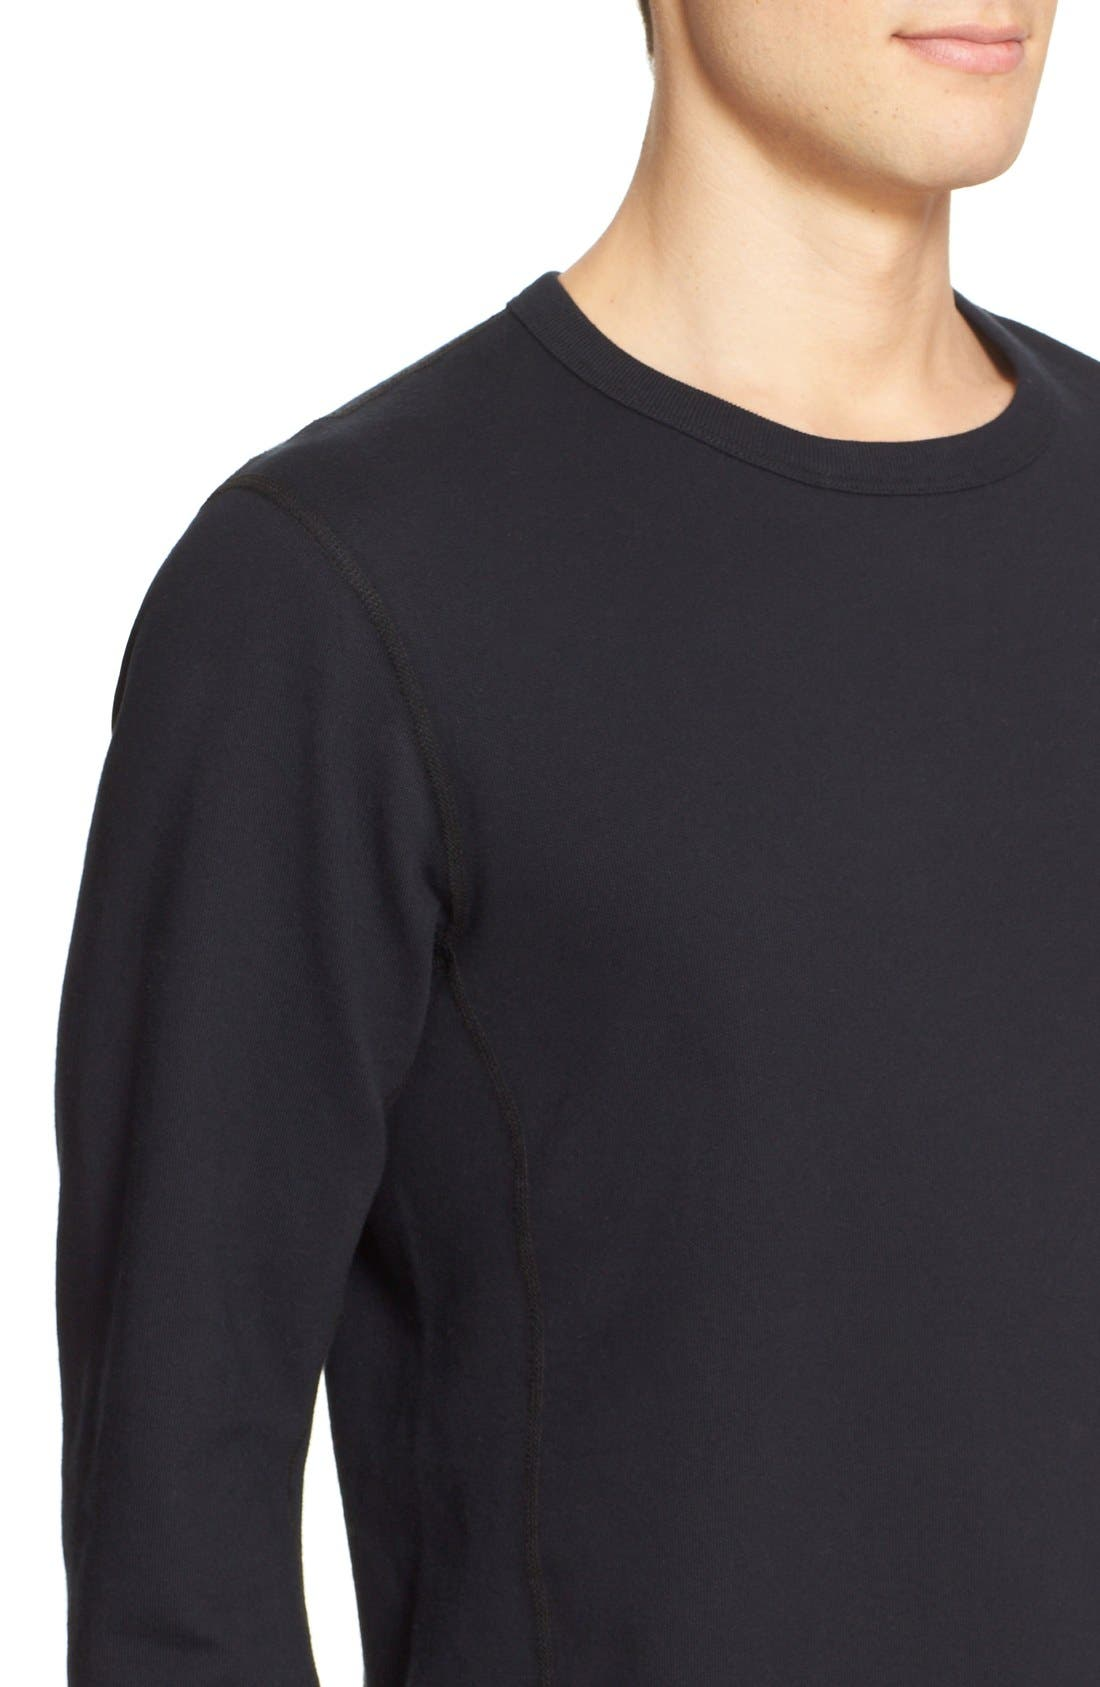 French Terry Sweatshirt,                             Alternate thumbnail 4, color,                             001